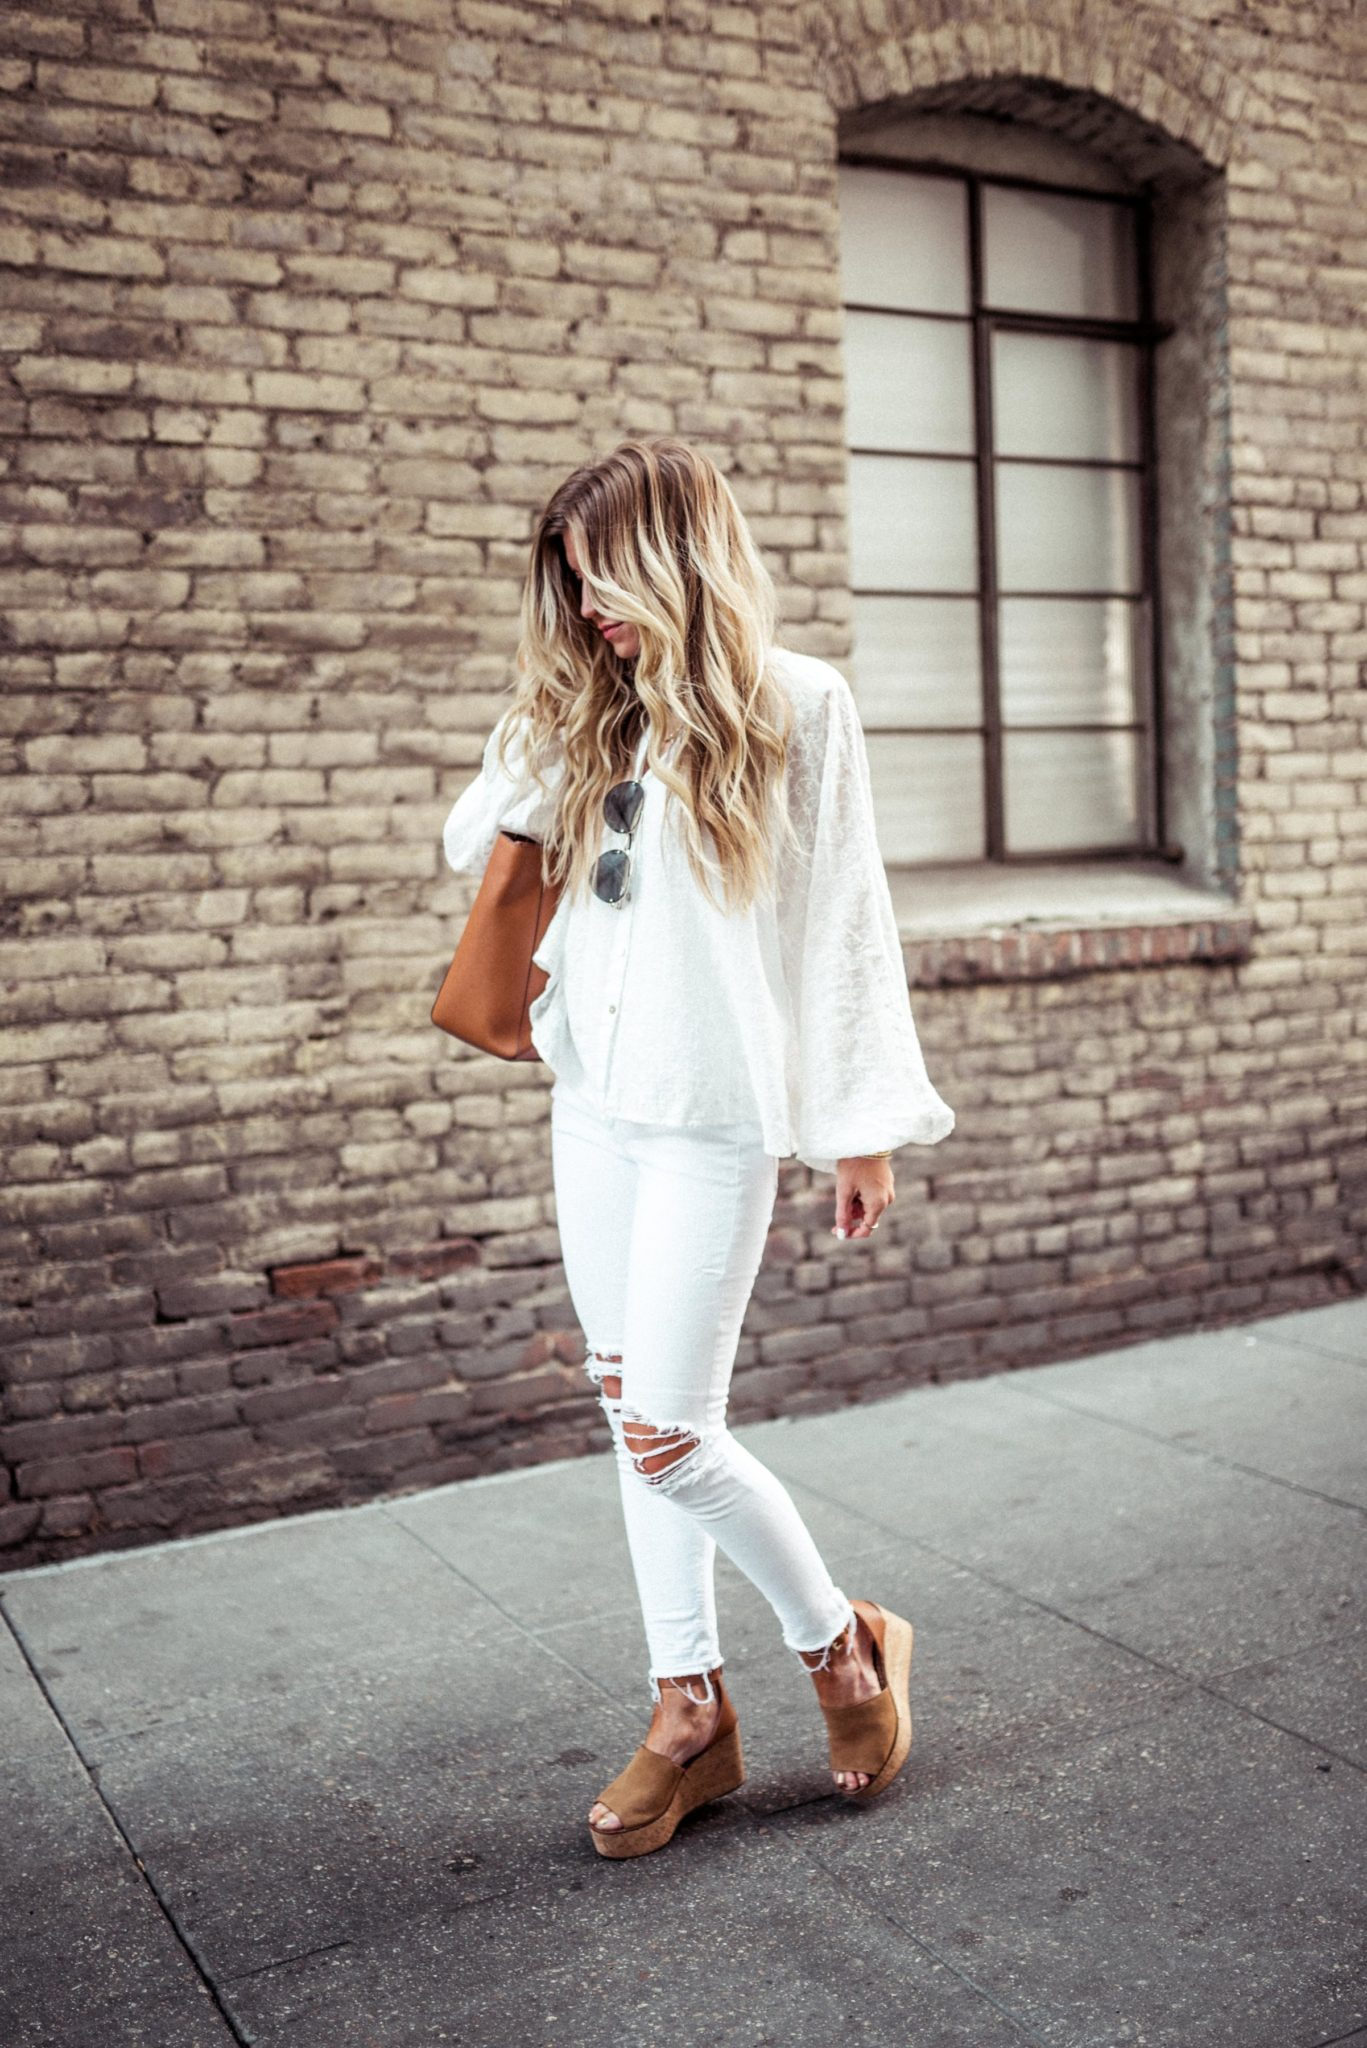 White flowy top + white pants for spring